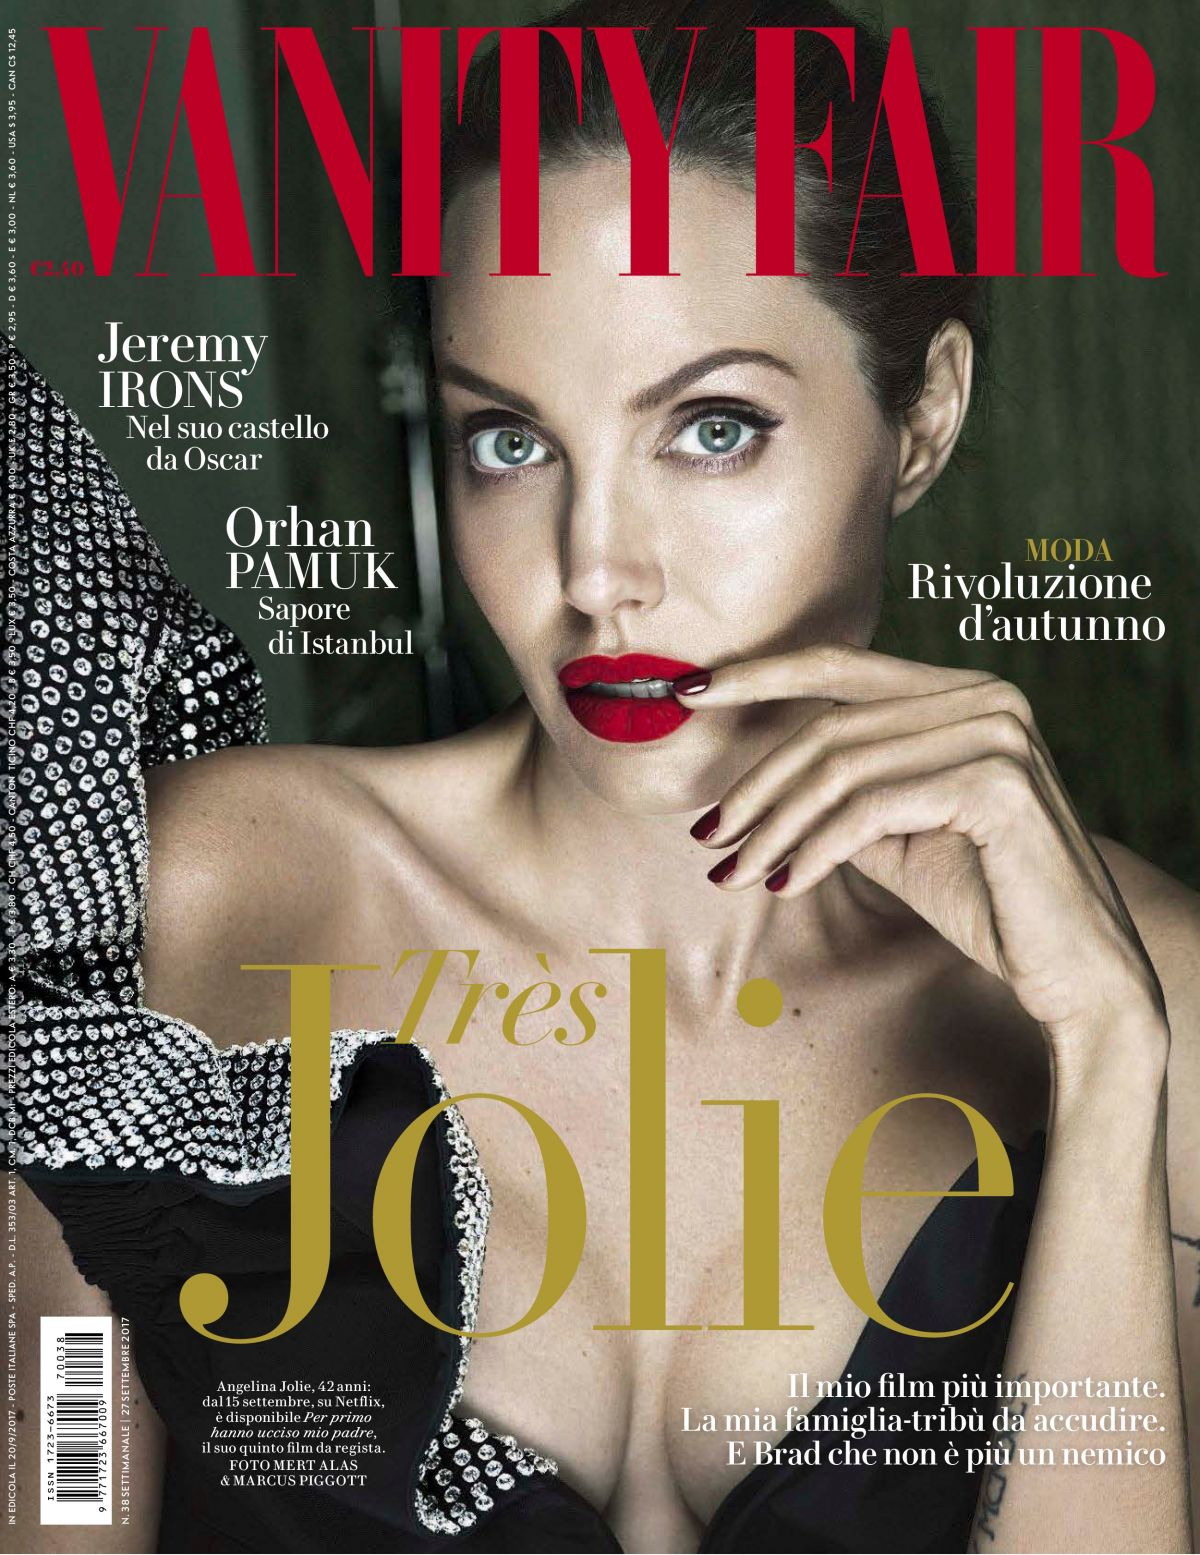 ANGELINA JOLIE in Vanity Fair Magazine, September 2017 Issue